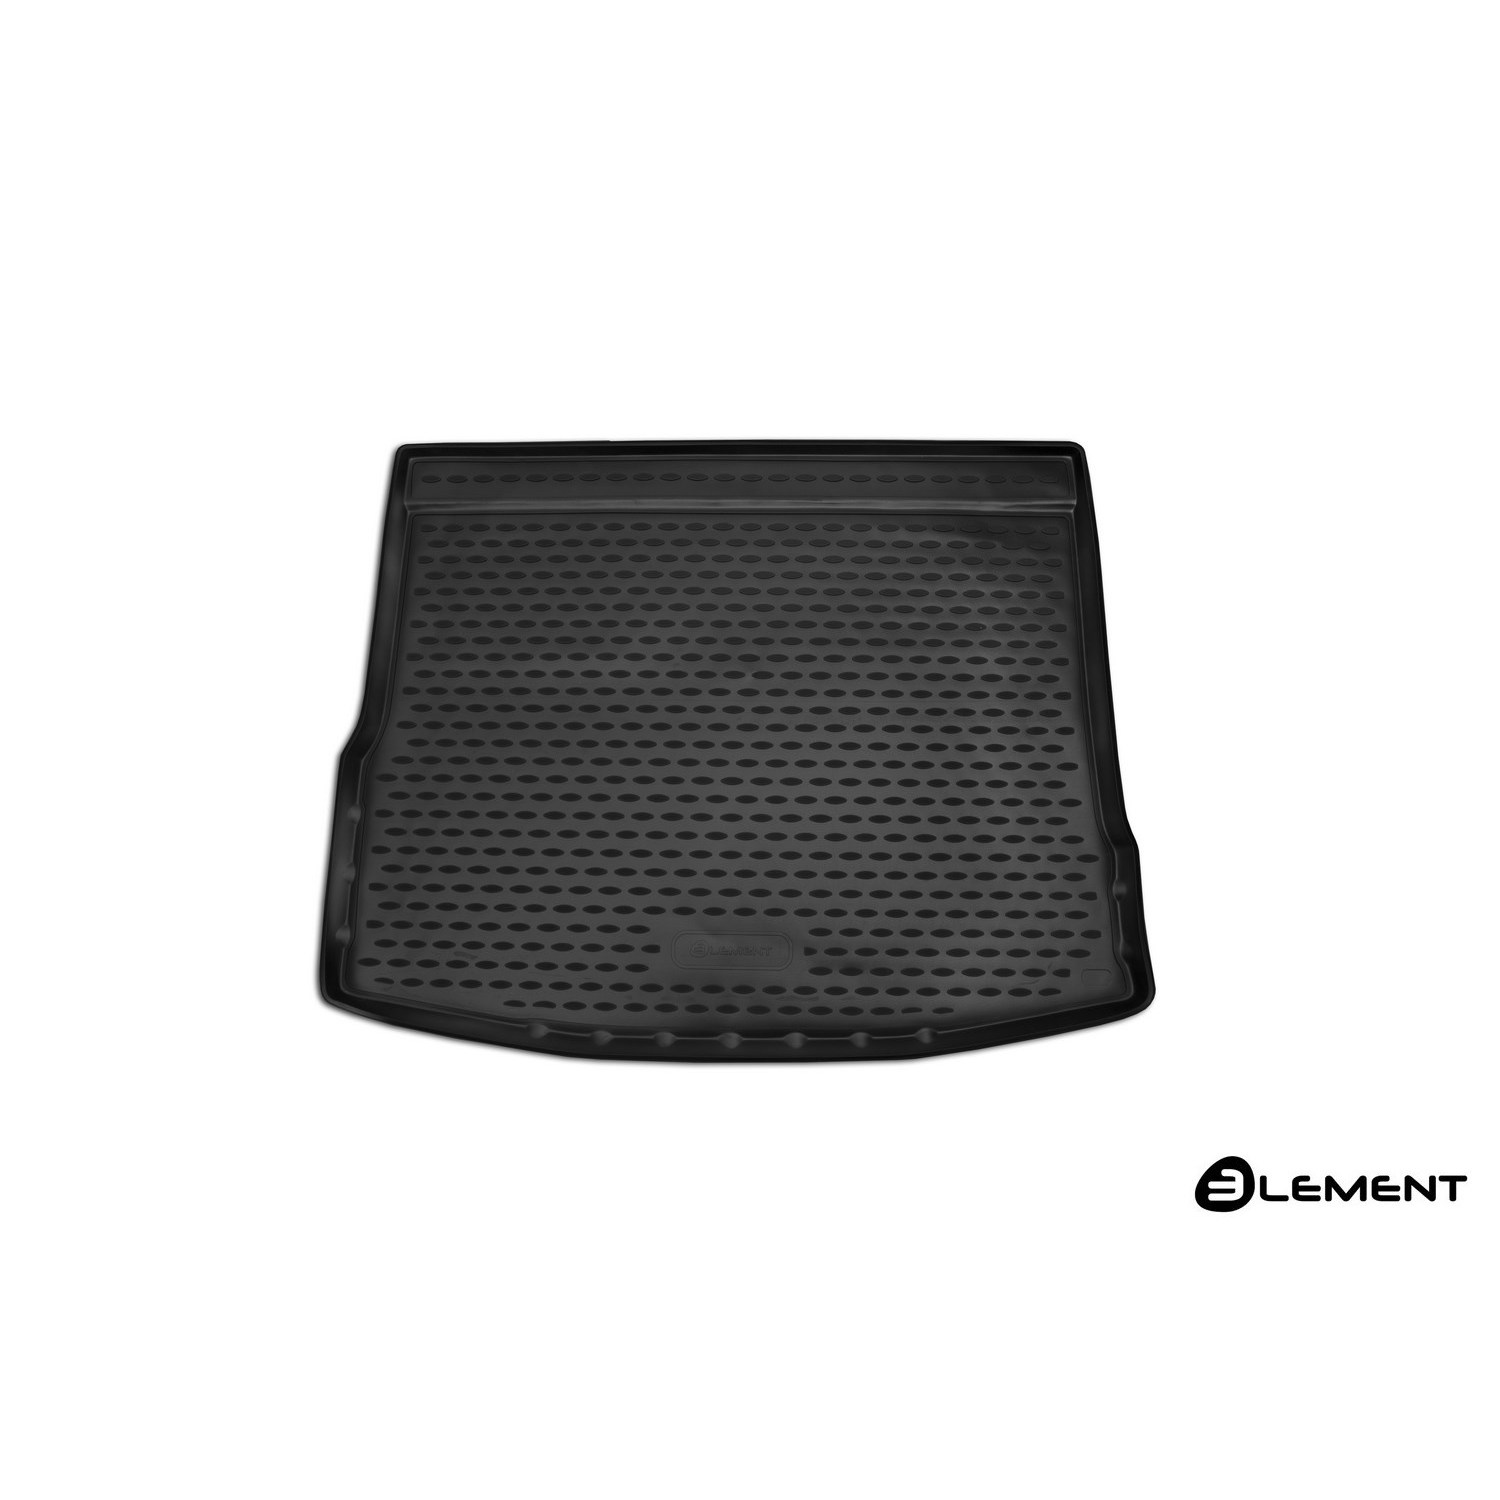 Trunk Mat For VOLKSWAGEN Tiguan 2017-, Cross, 1 PCs ELEMENT5154B13